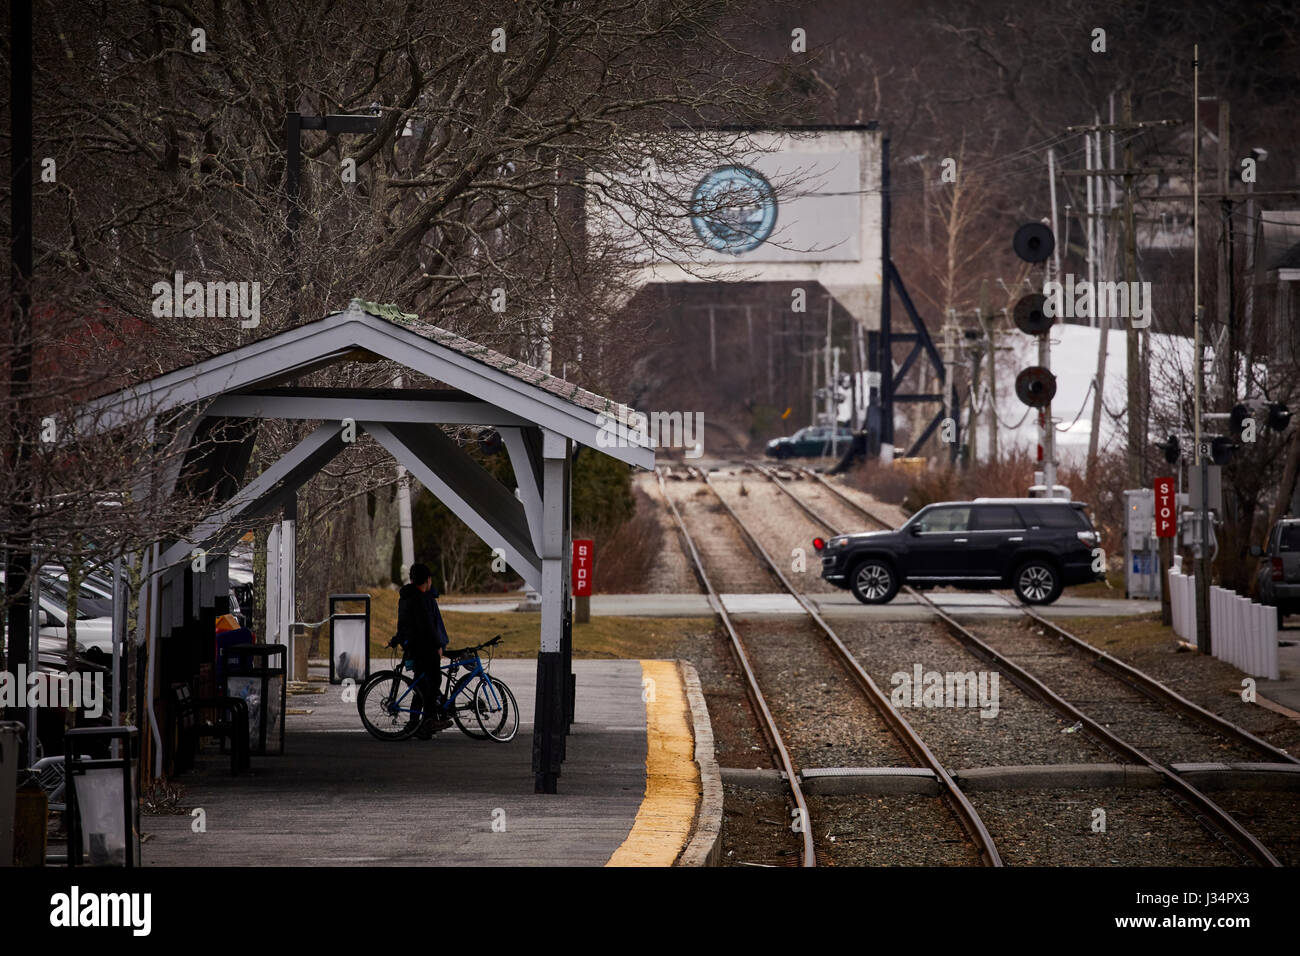 Railroad station and level crossing Manchester by the Sea, Boston, Massachusetts, United States, USA, Stock Photo